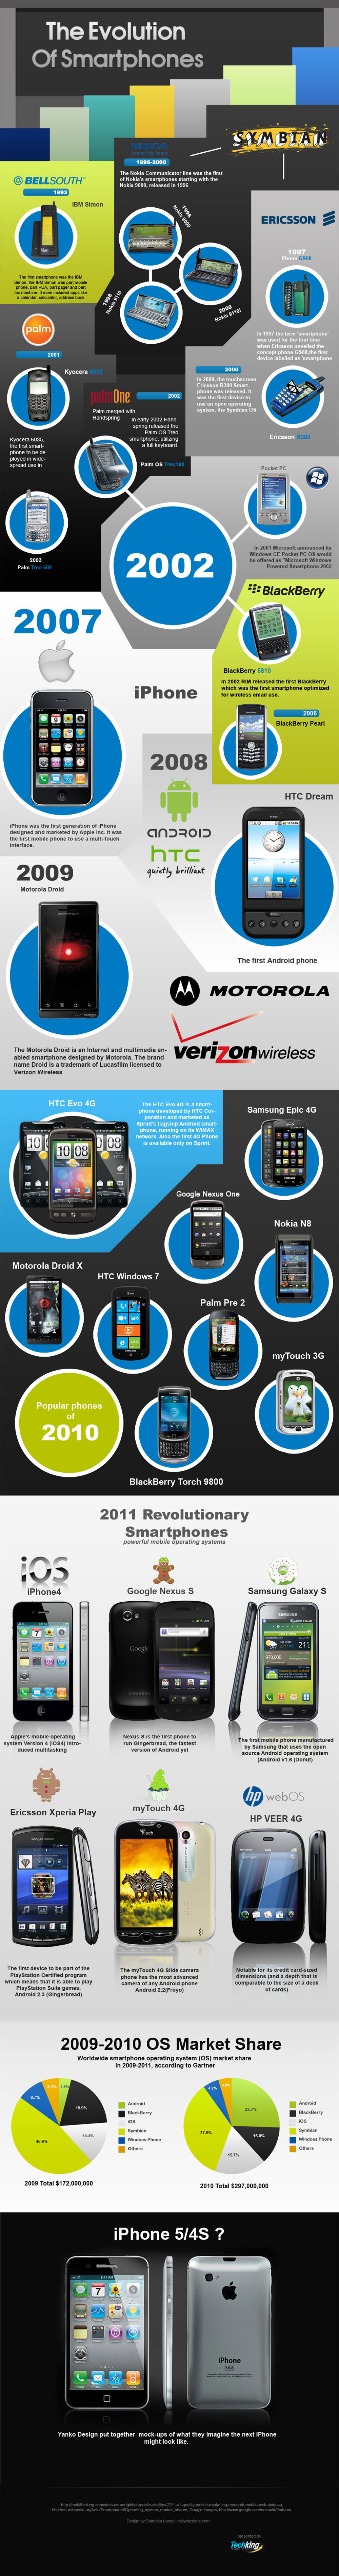 The-Evolution-Of-Smartphones-infographic